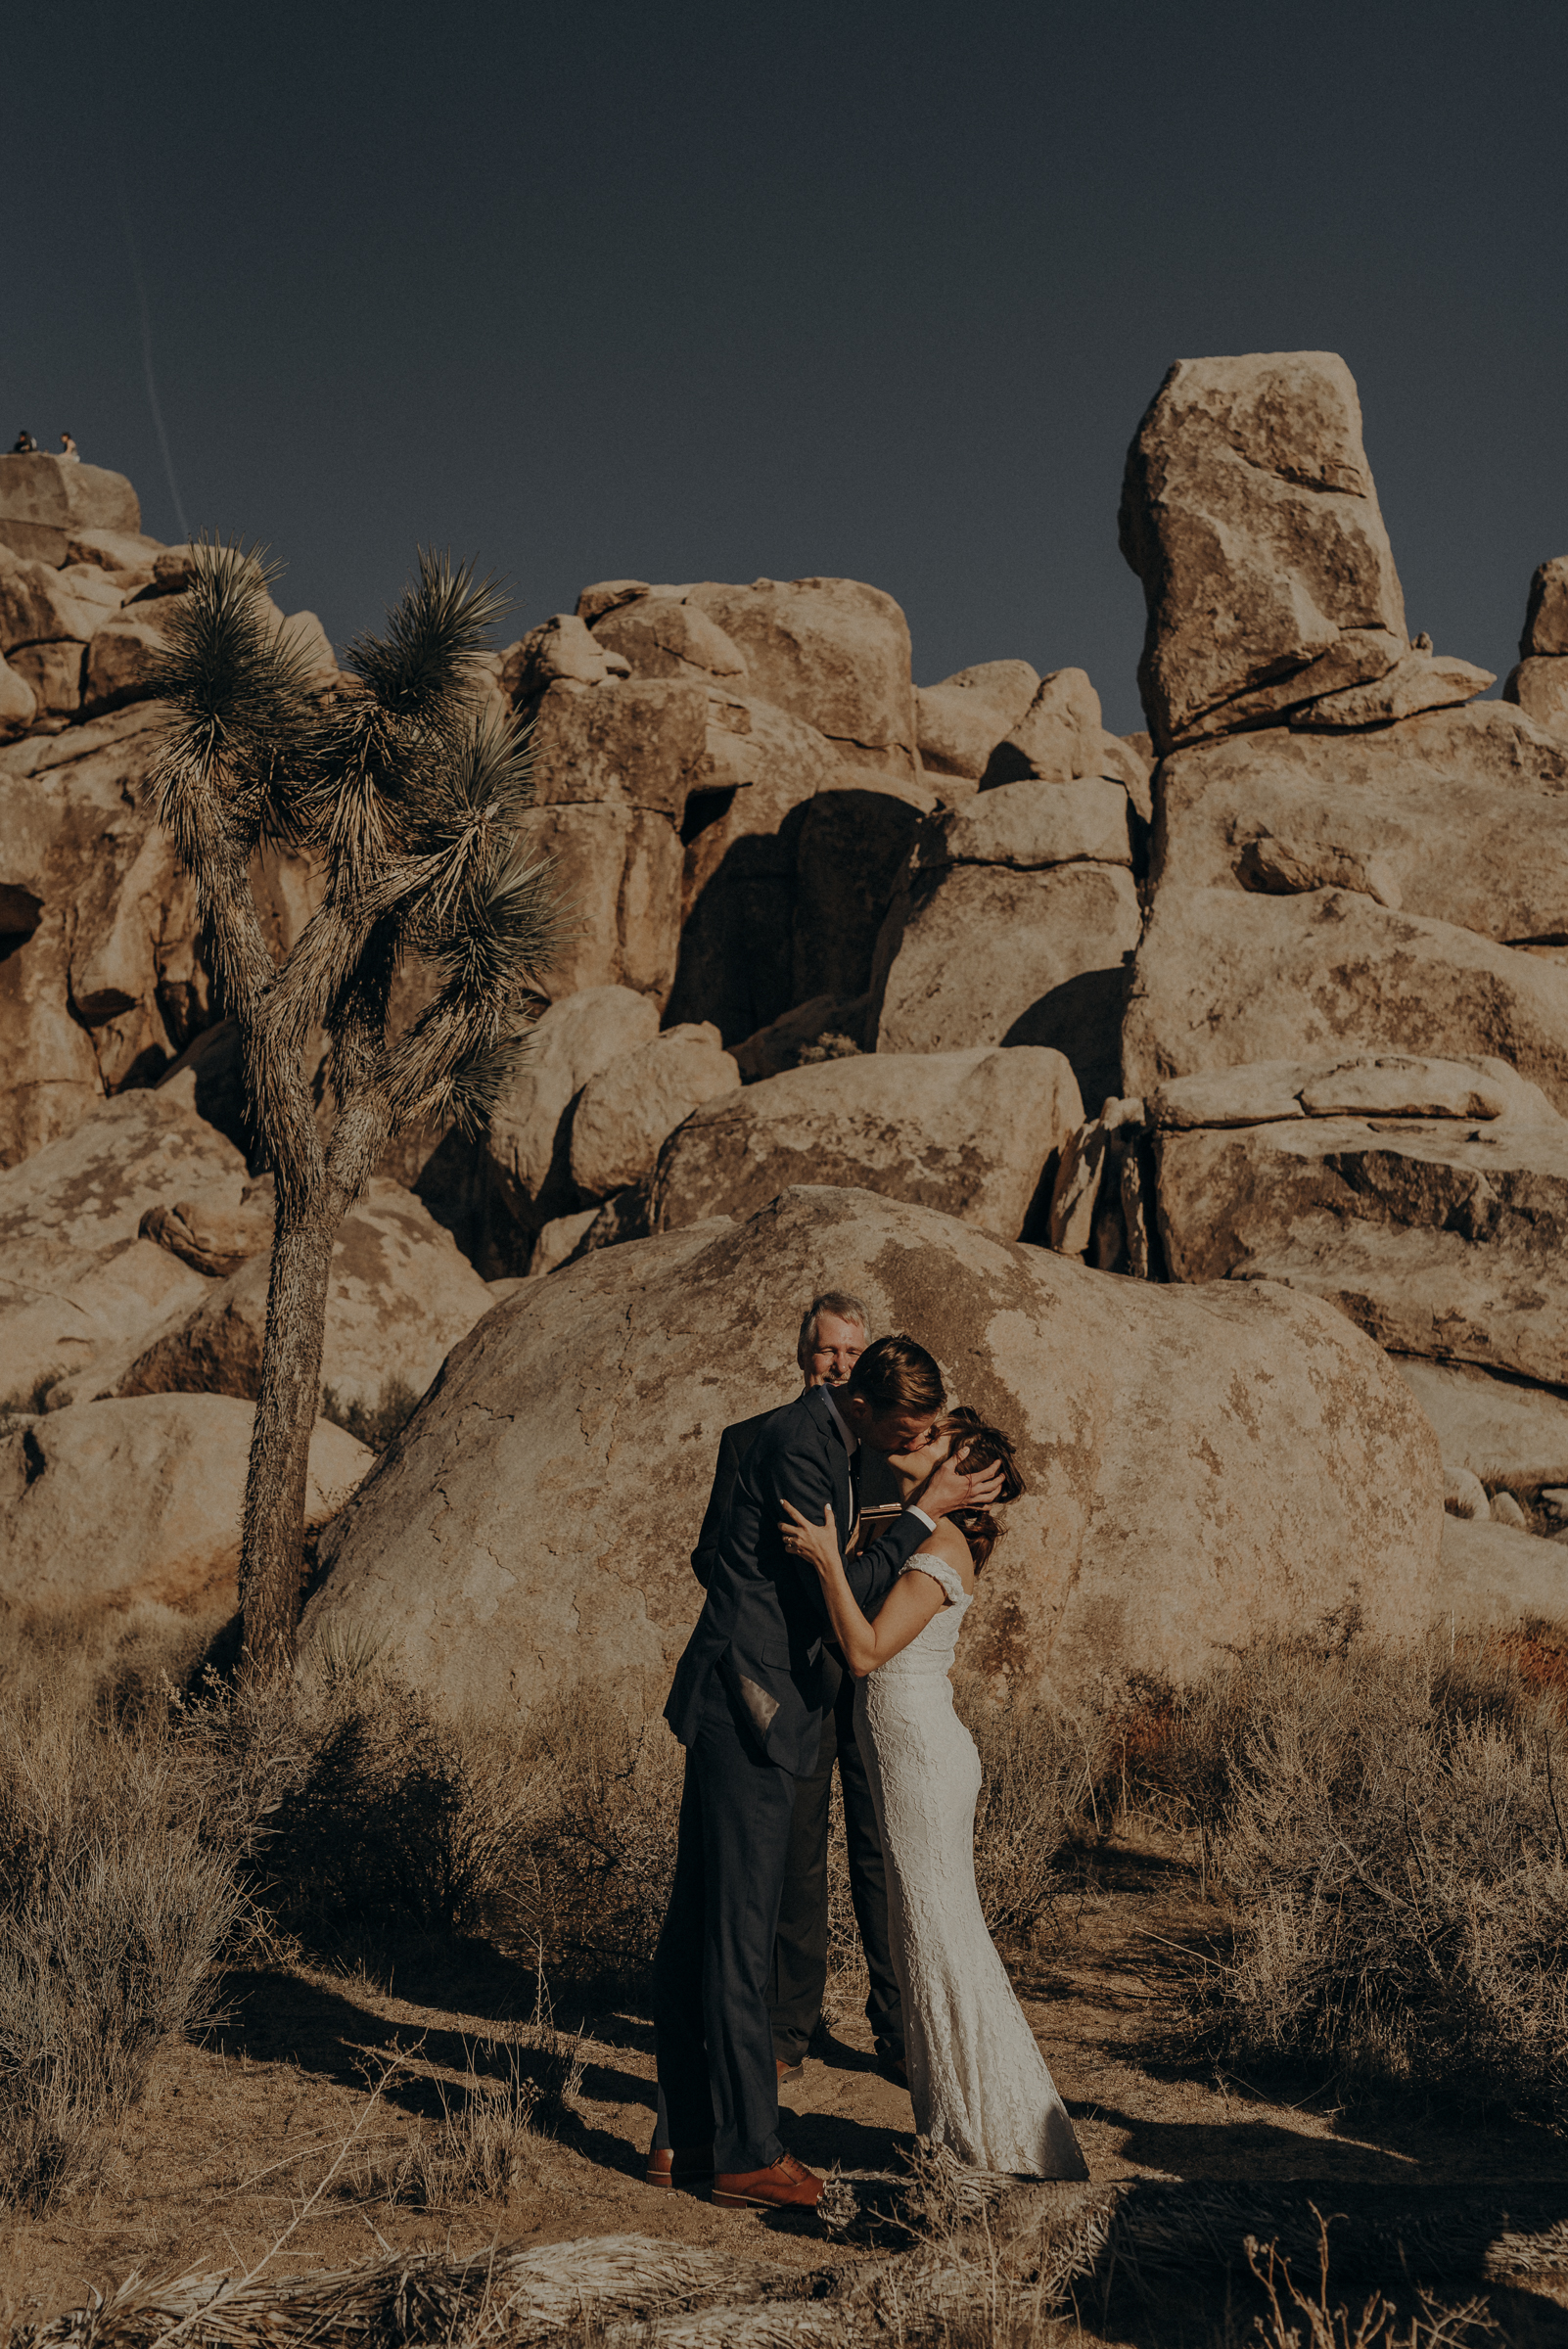 Joshua Tree Elopement - Los Angeles Wedding Photographers - IsaiahAndTaylor.com-031.jpg